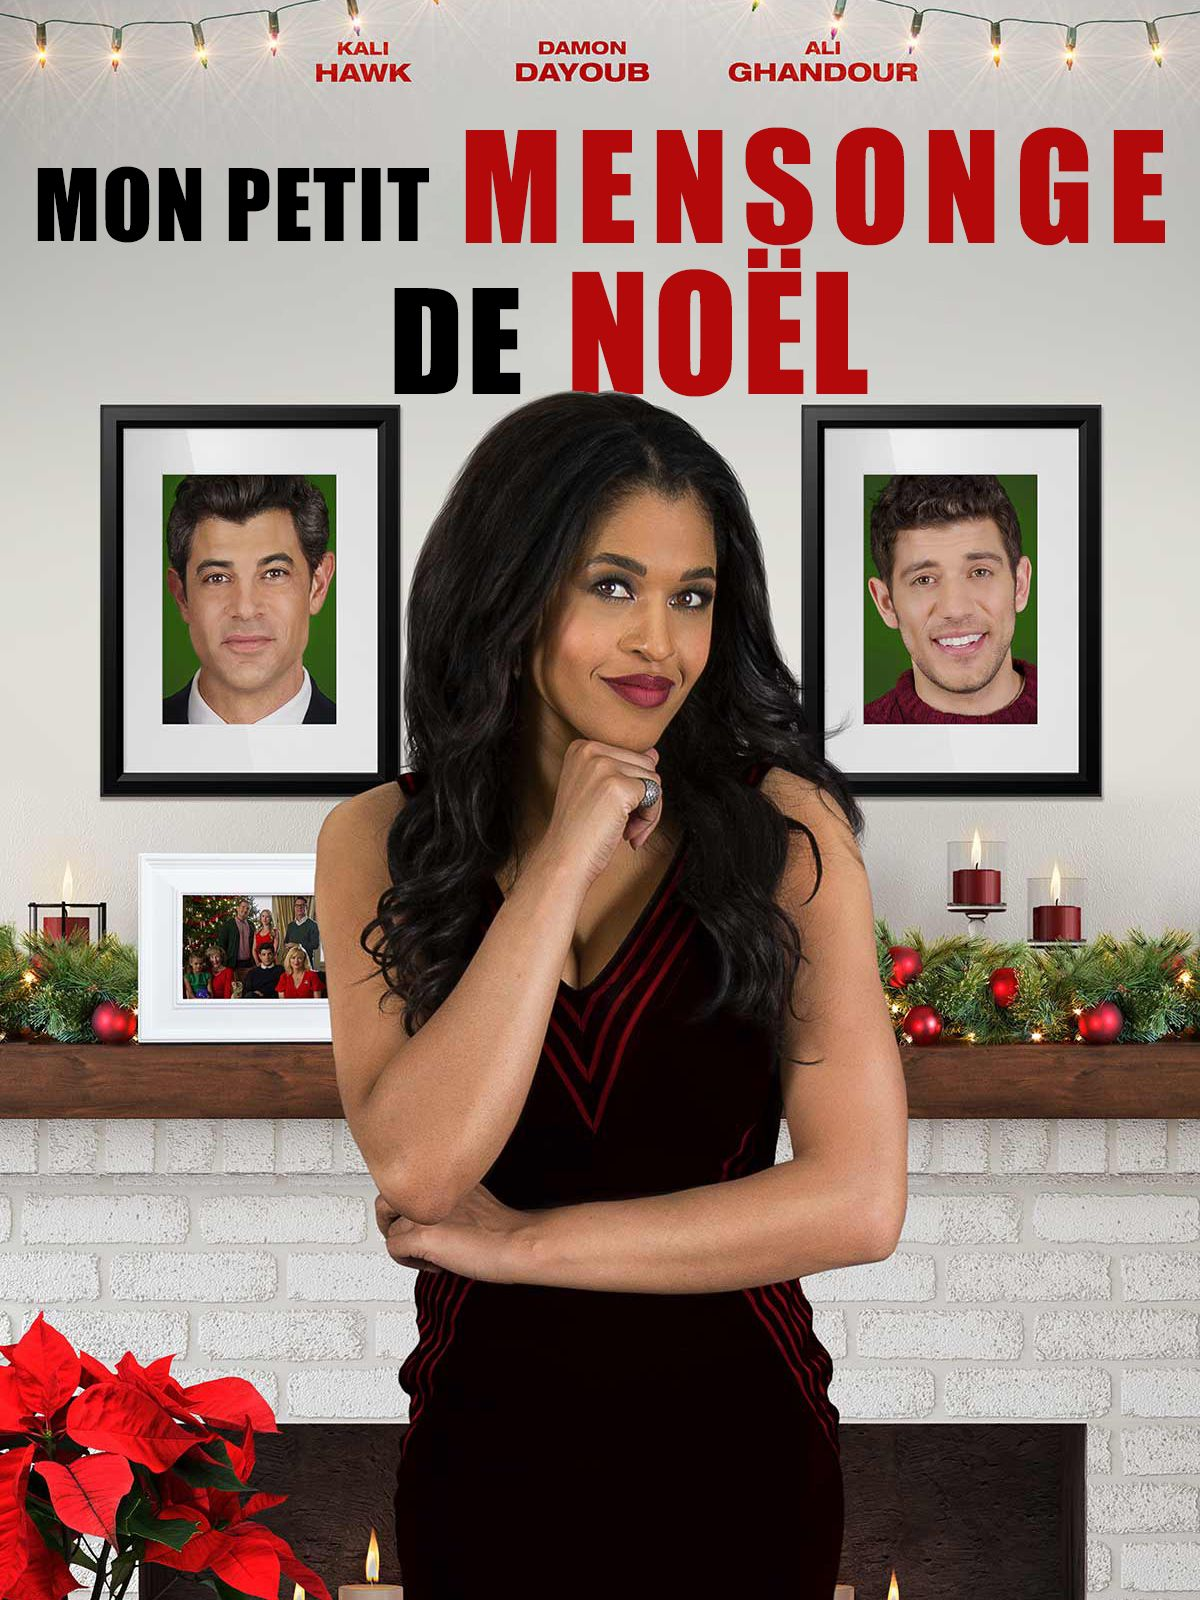 affiche poster petit mensonge noel truth about christmas disney freeform